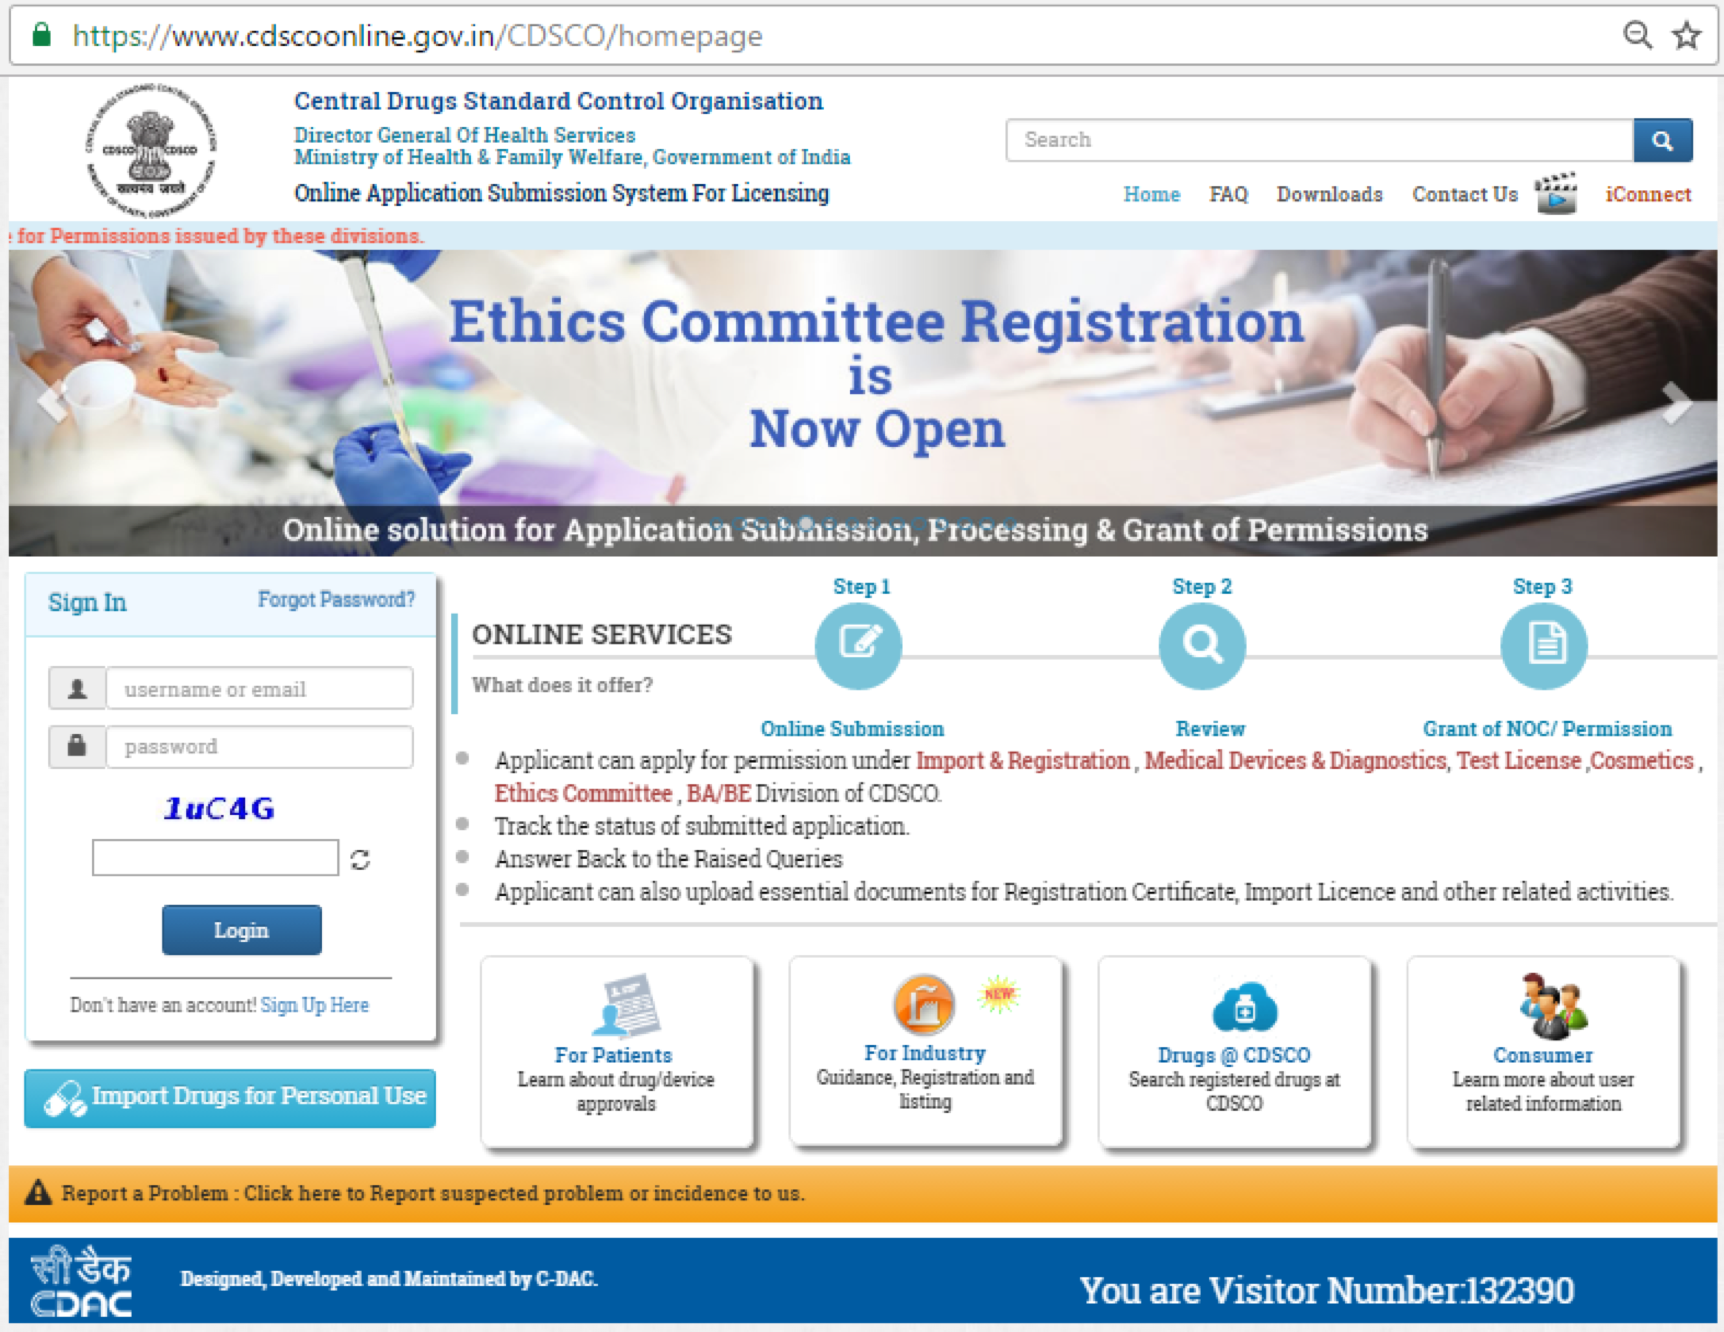 Figure 1: Sign up page